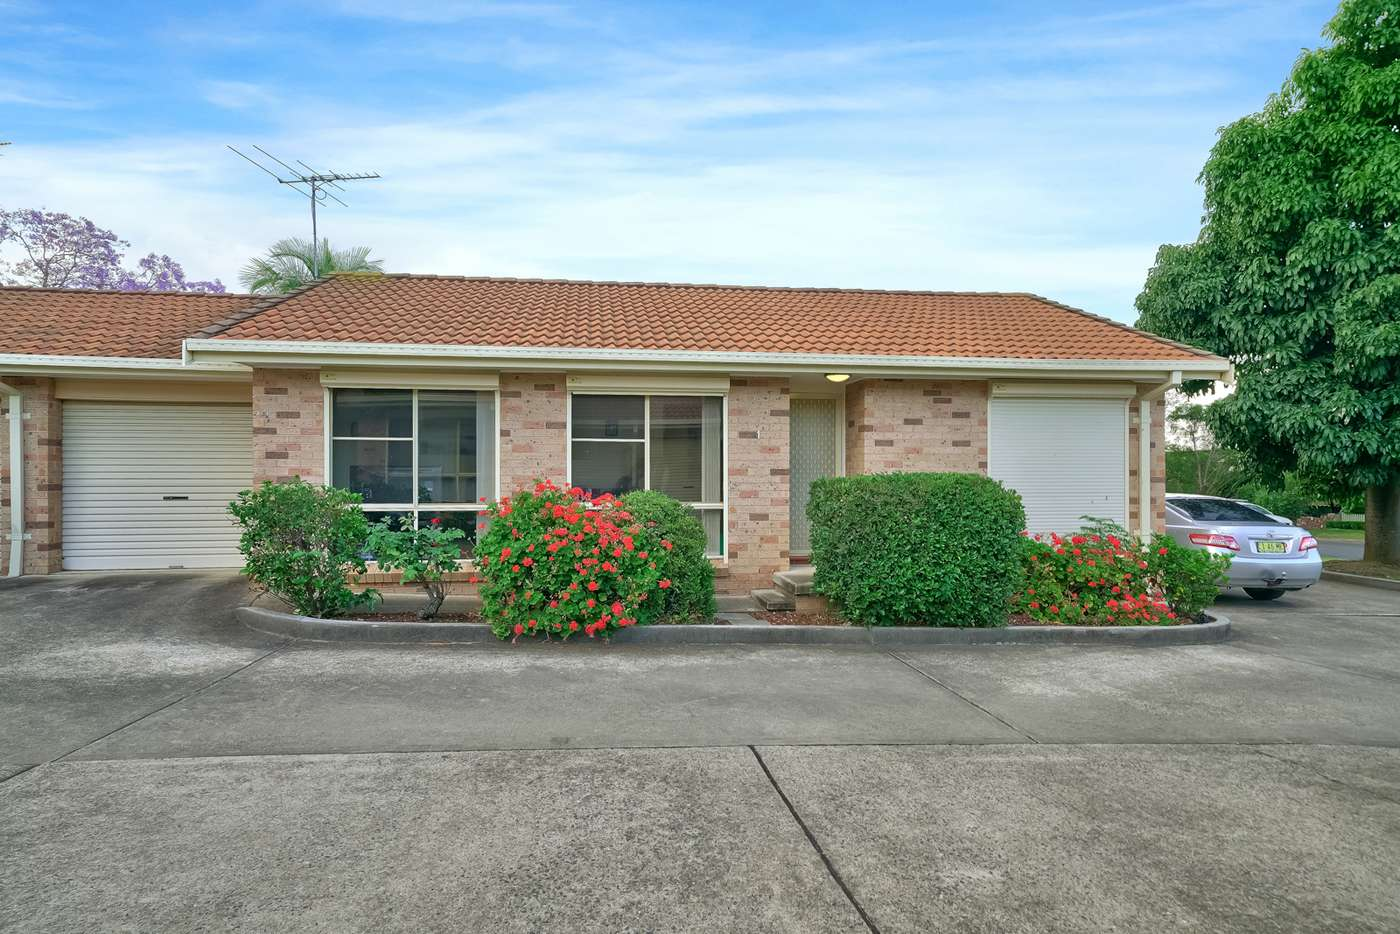 Main view of Homely villa listing, 1/11 Park Road, Ingleburn, NSW 2565